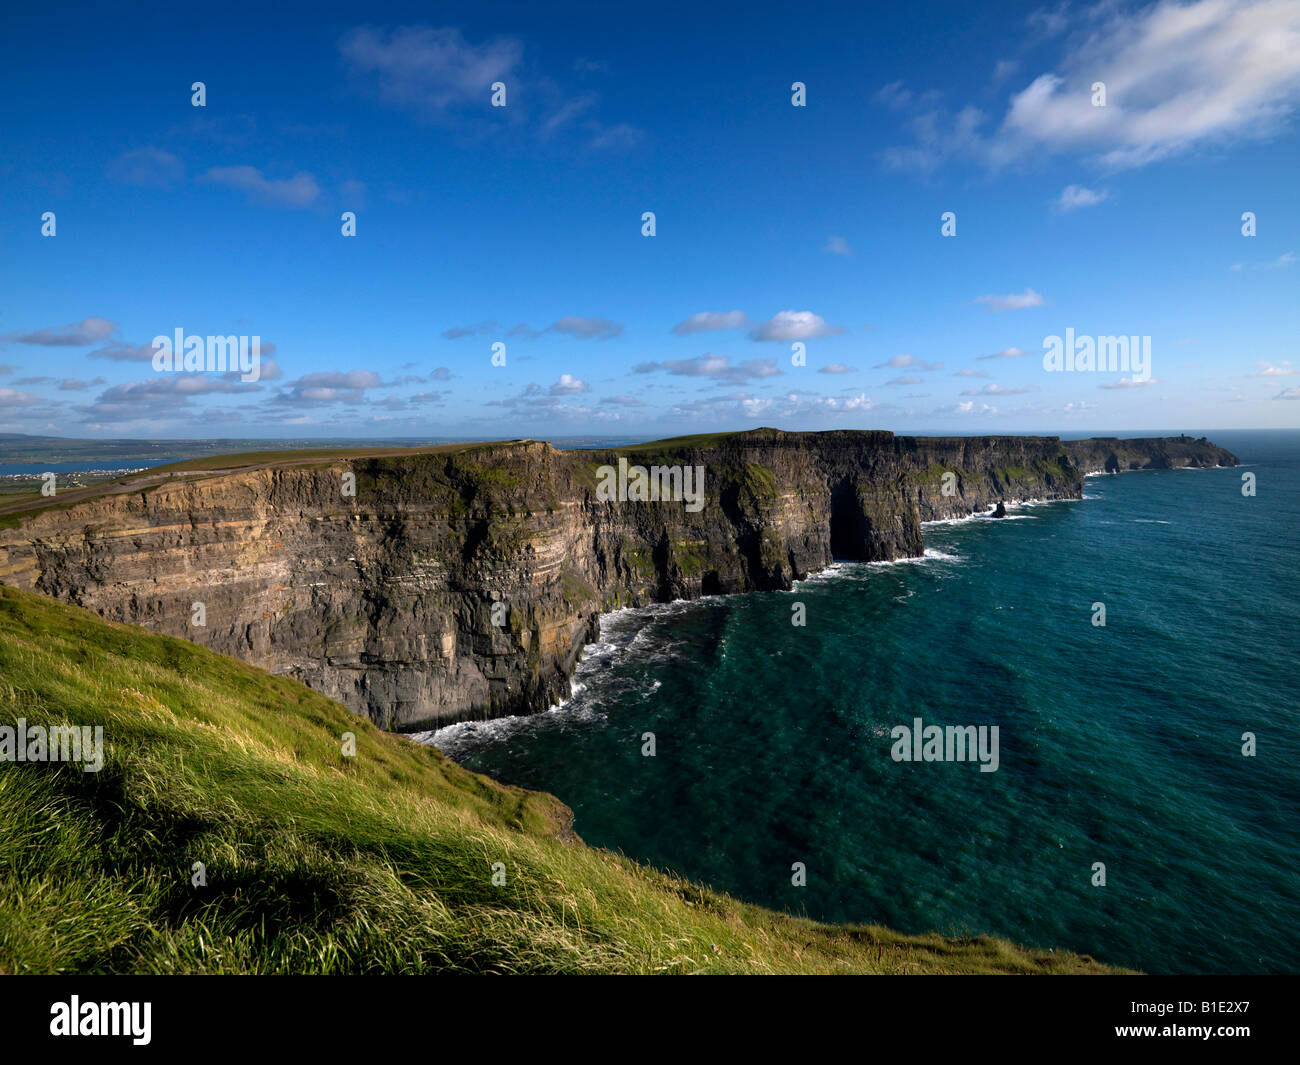 Cliffs of Moher Clare - Stock Image